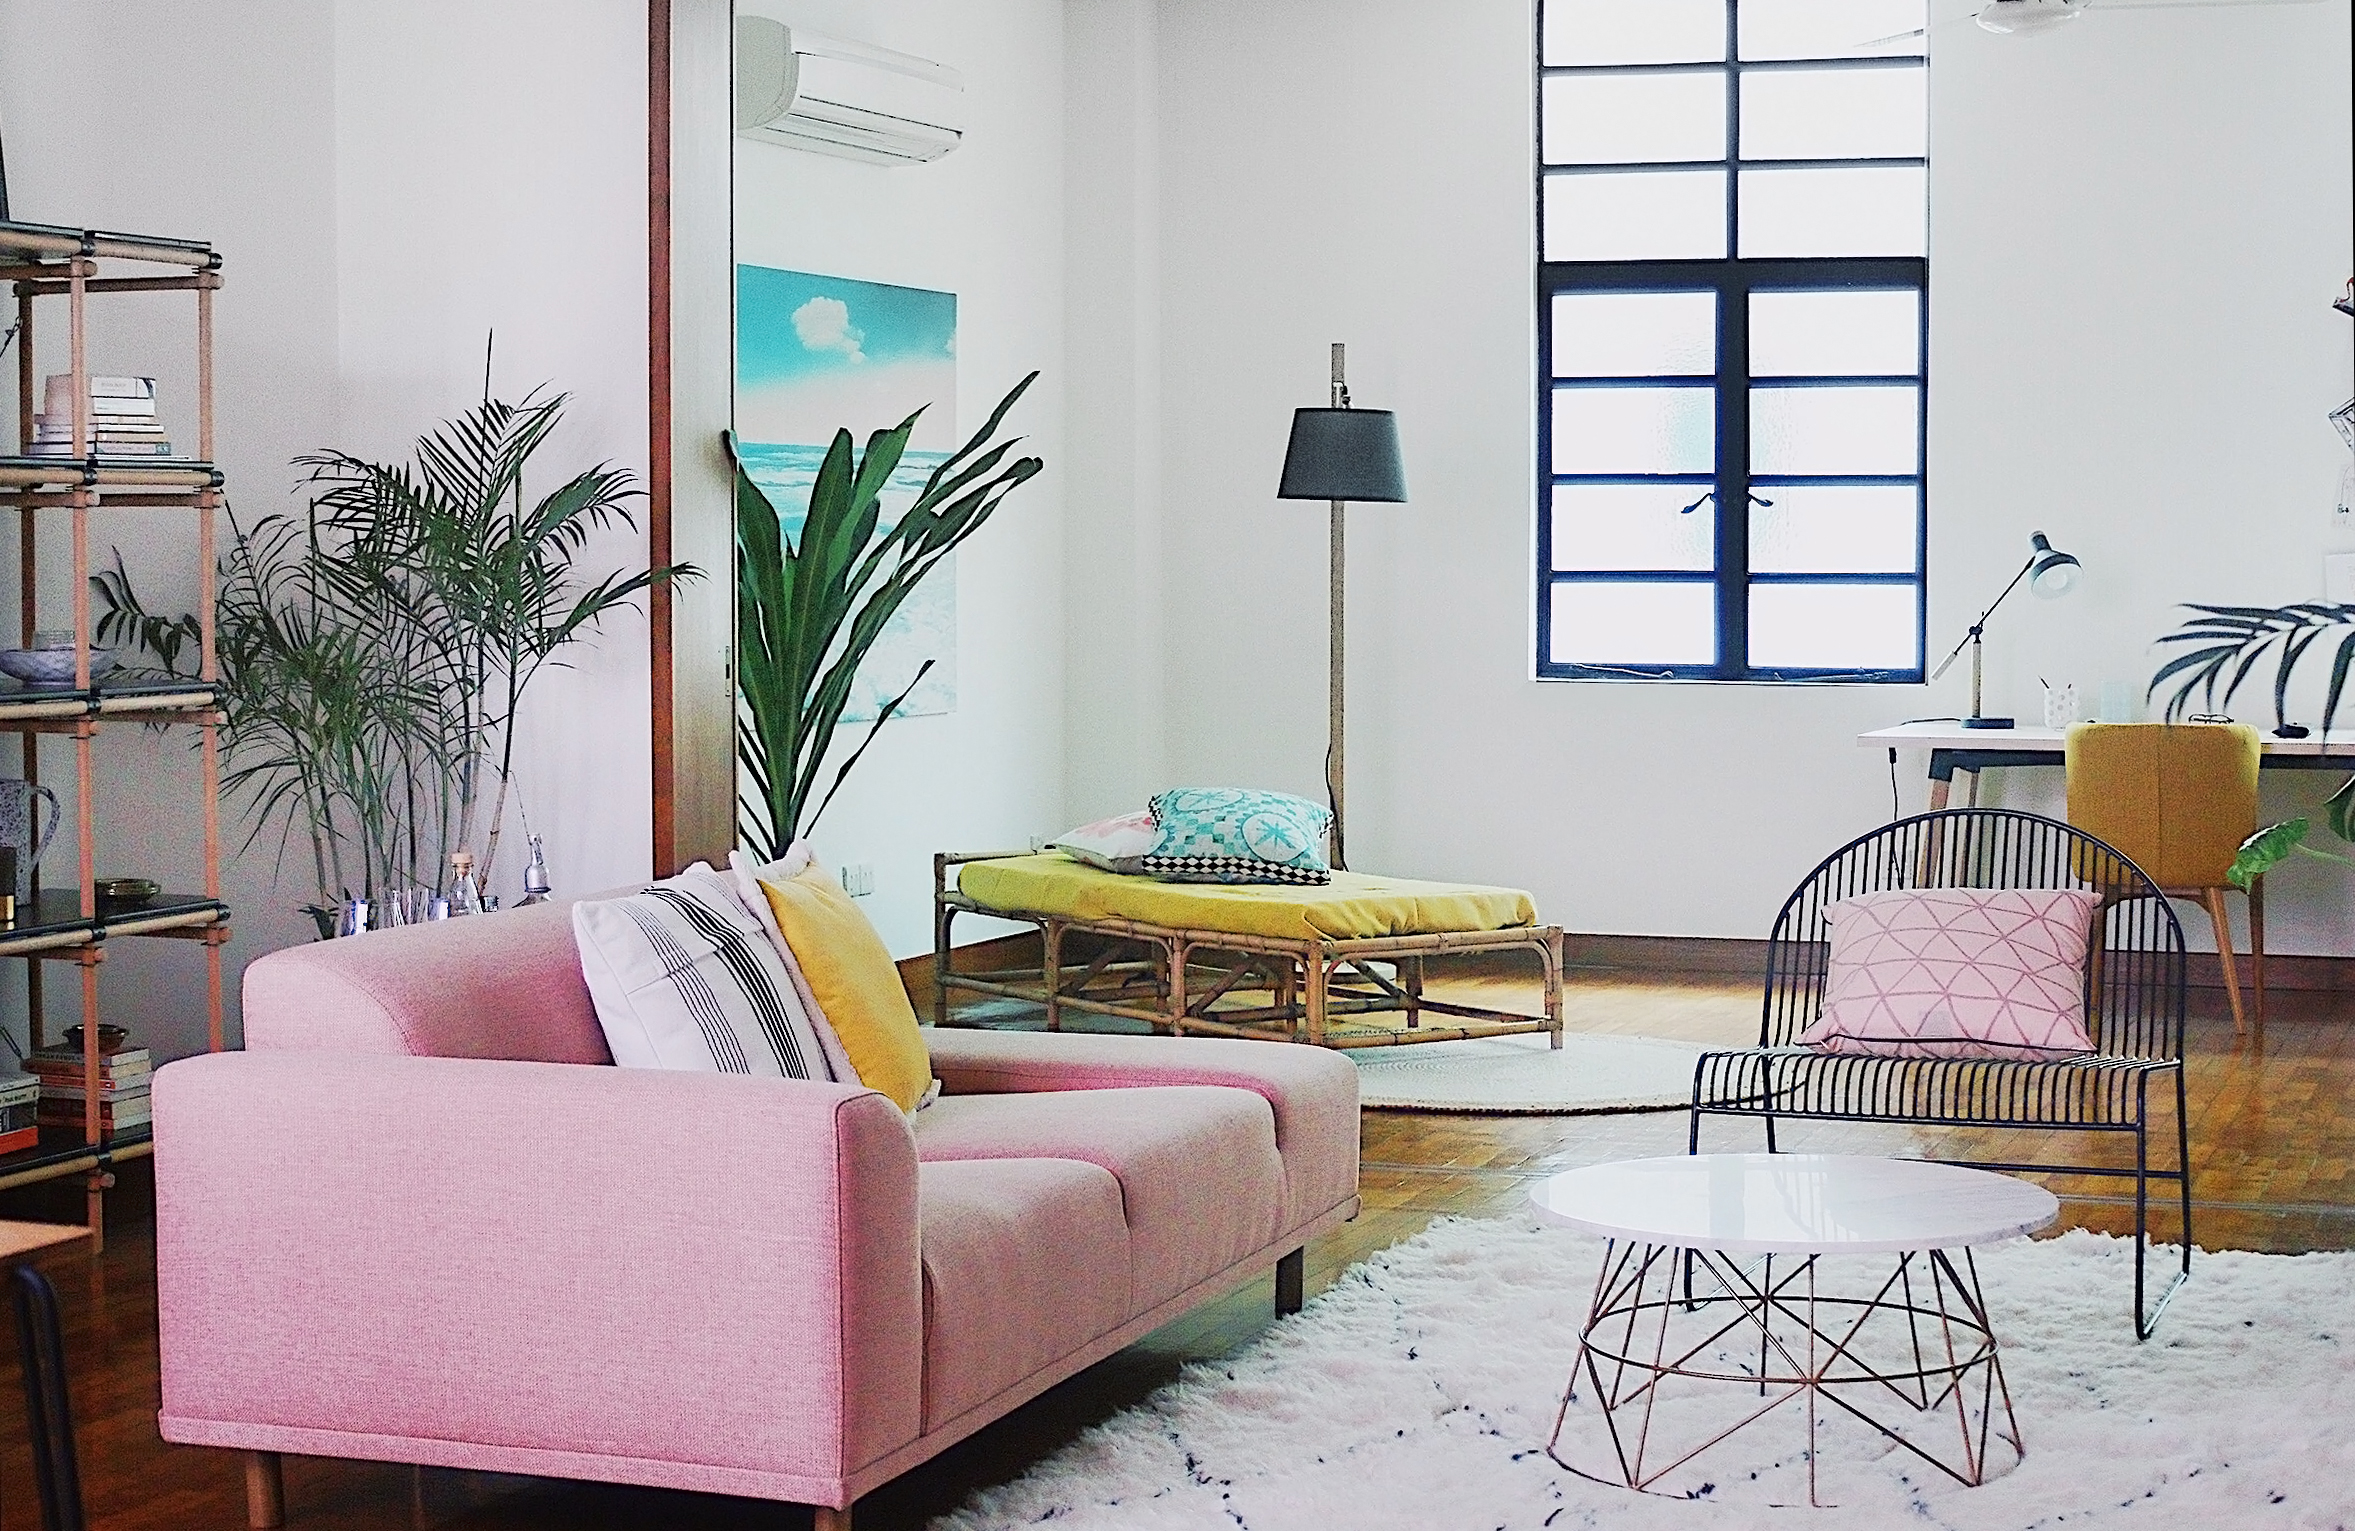 Boho Chic Apartment Interior Styling Instagram Worthy